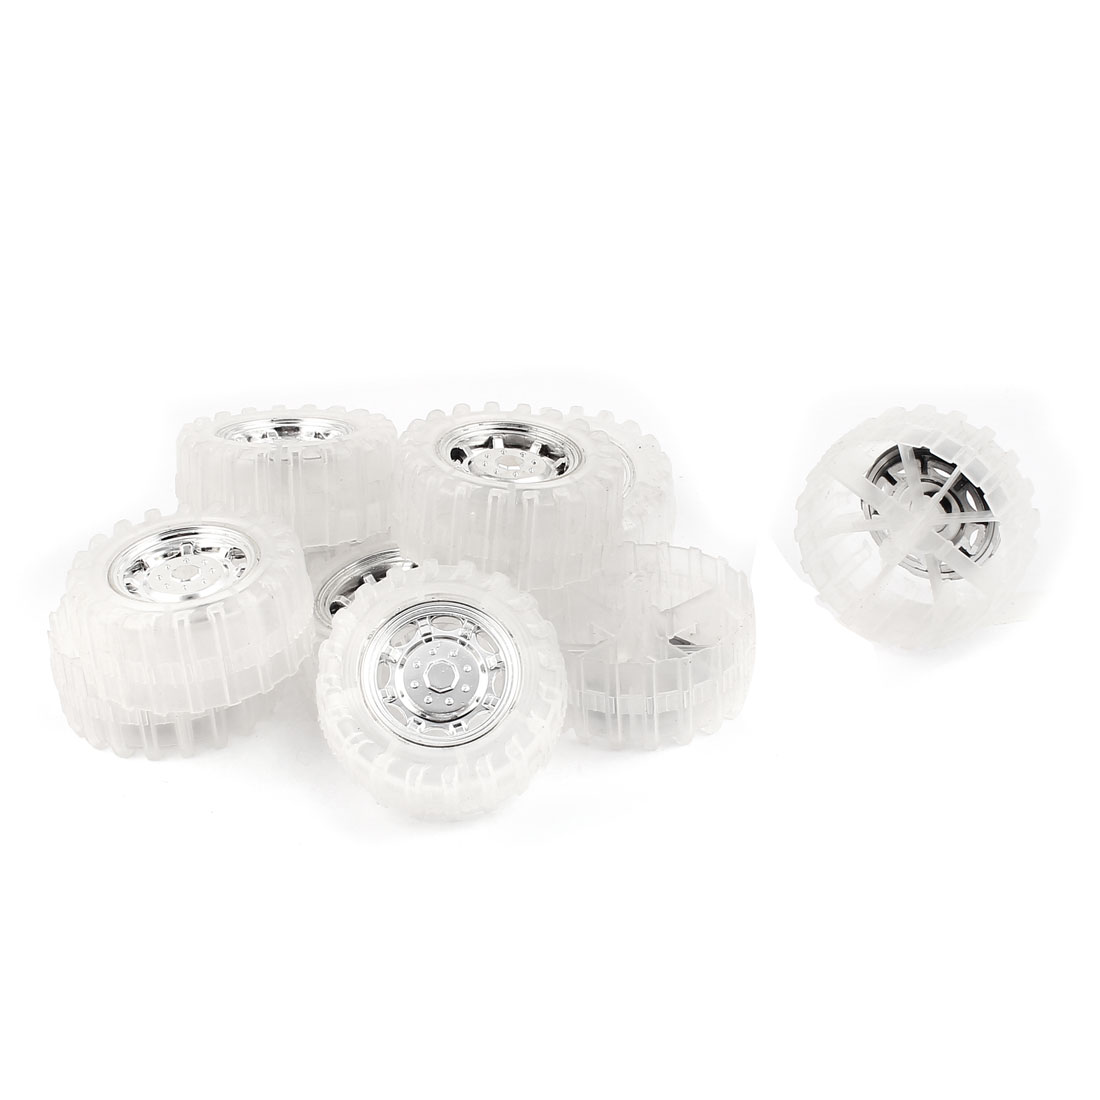 10 Pcs RC Toy Car Robot Vehicle Wheel DIY 55mm Diameter Rims Clear